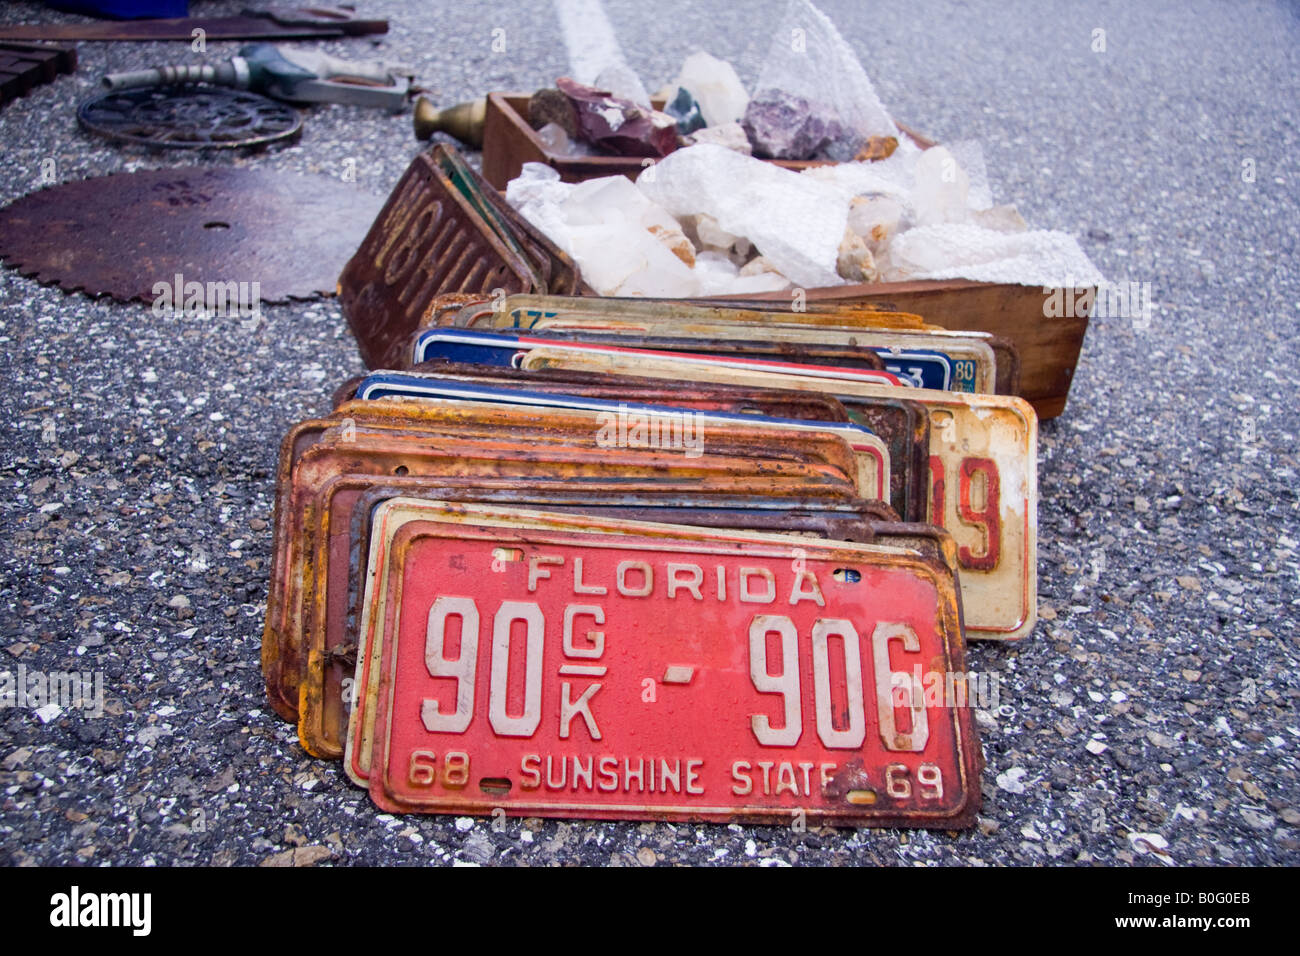 Old license plates are collectible at the flea market - Stock Image